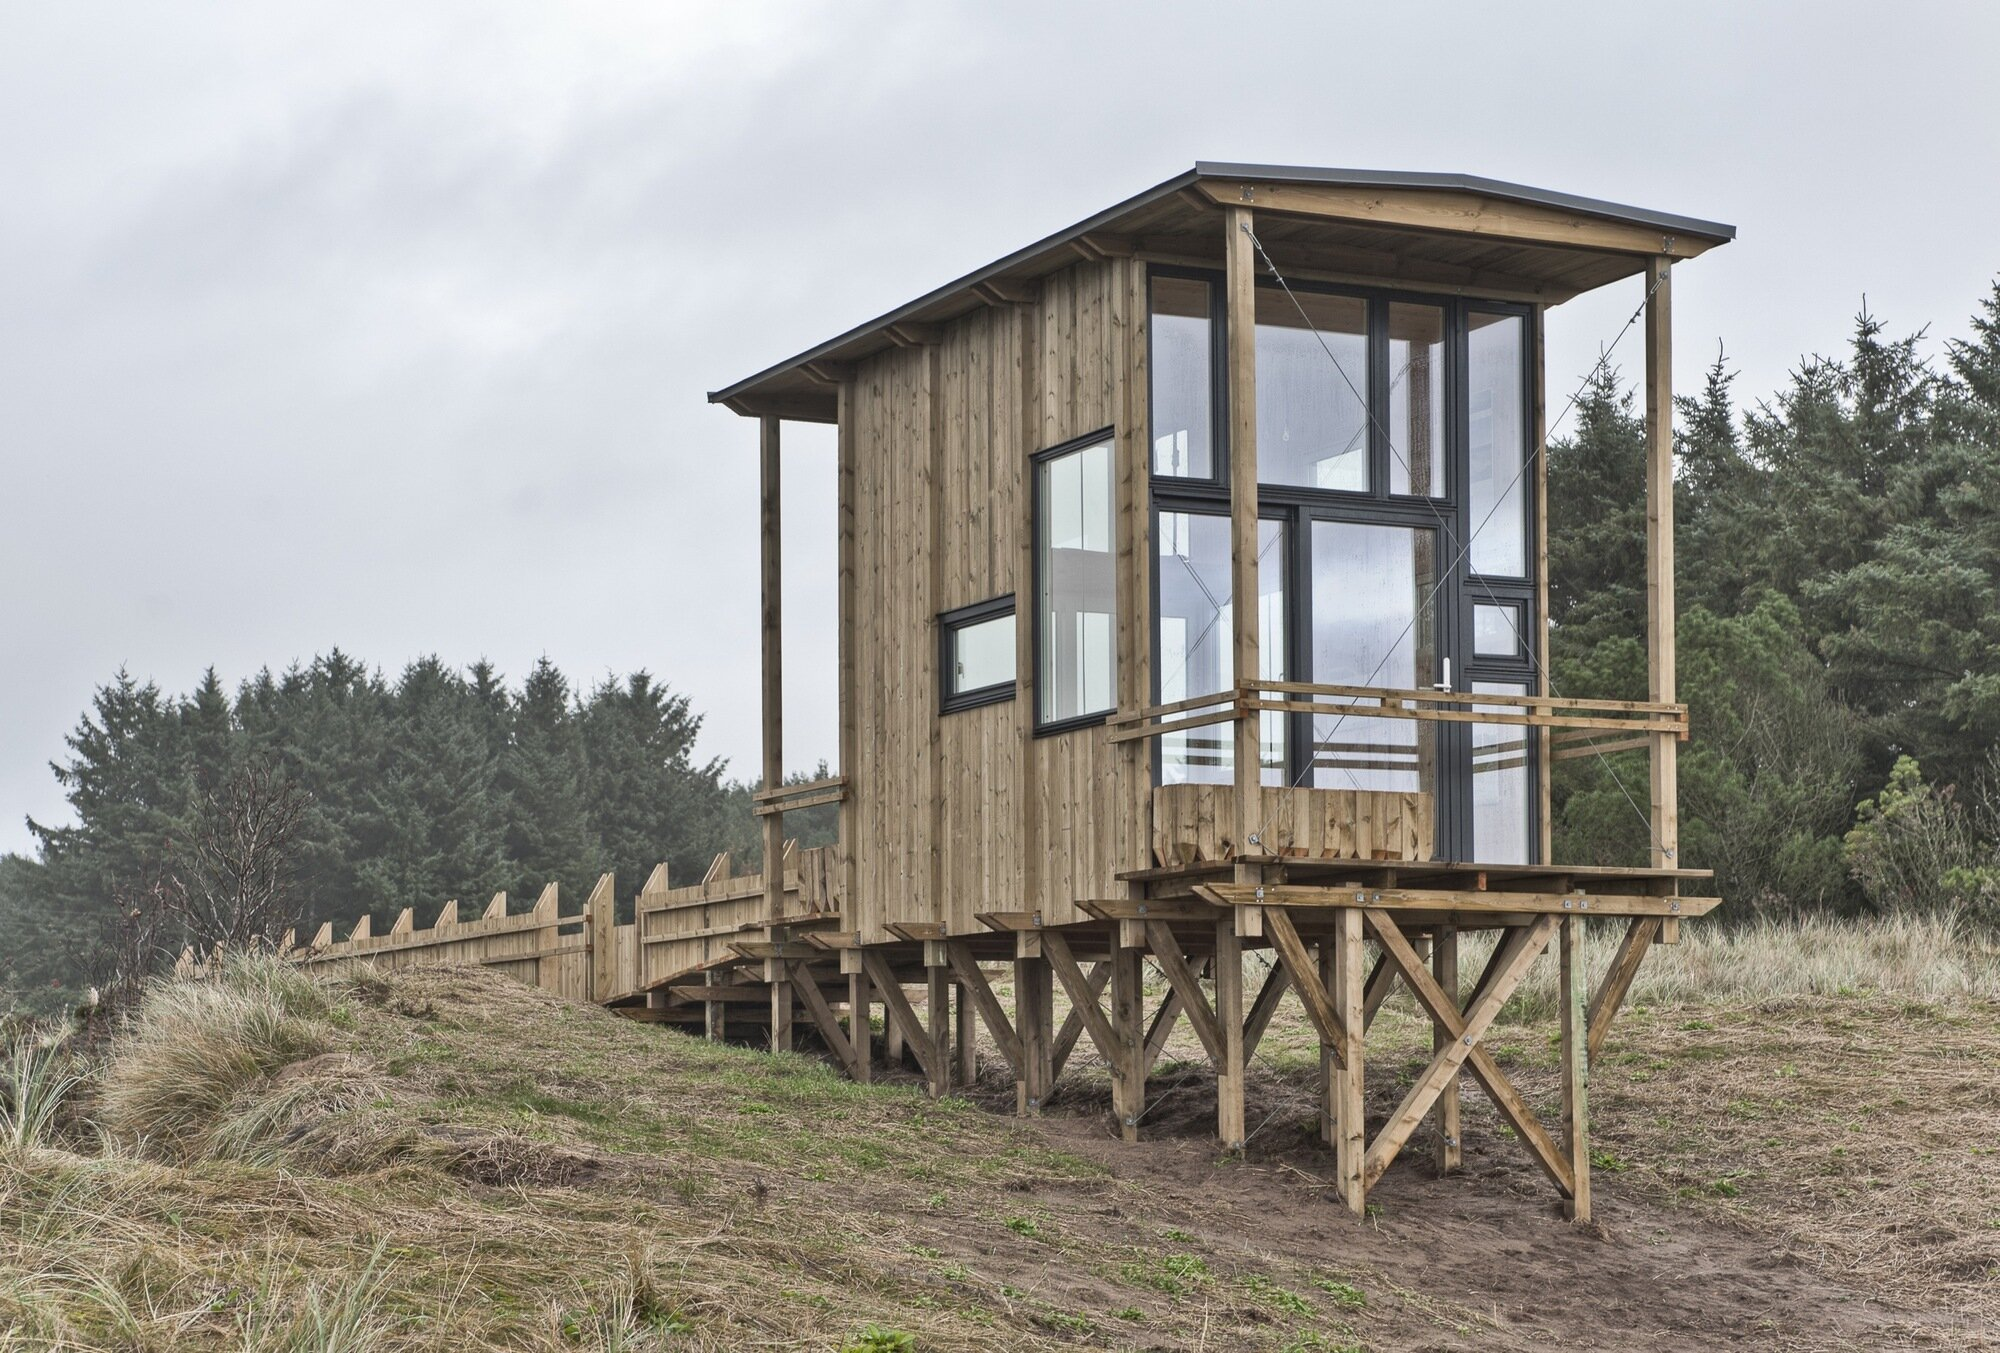 Lyset paa lista an outpost to preserve rural norway - Norwegian wood houses ...